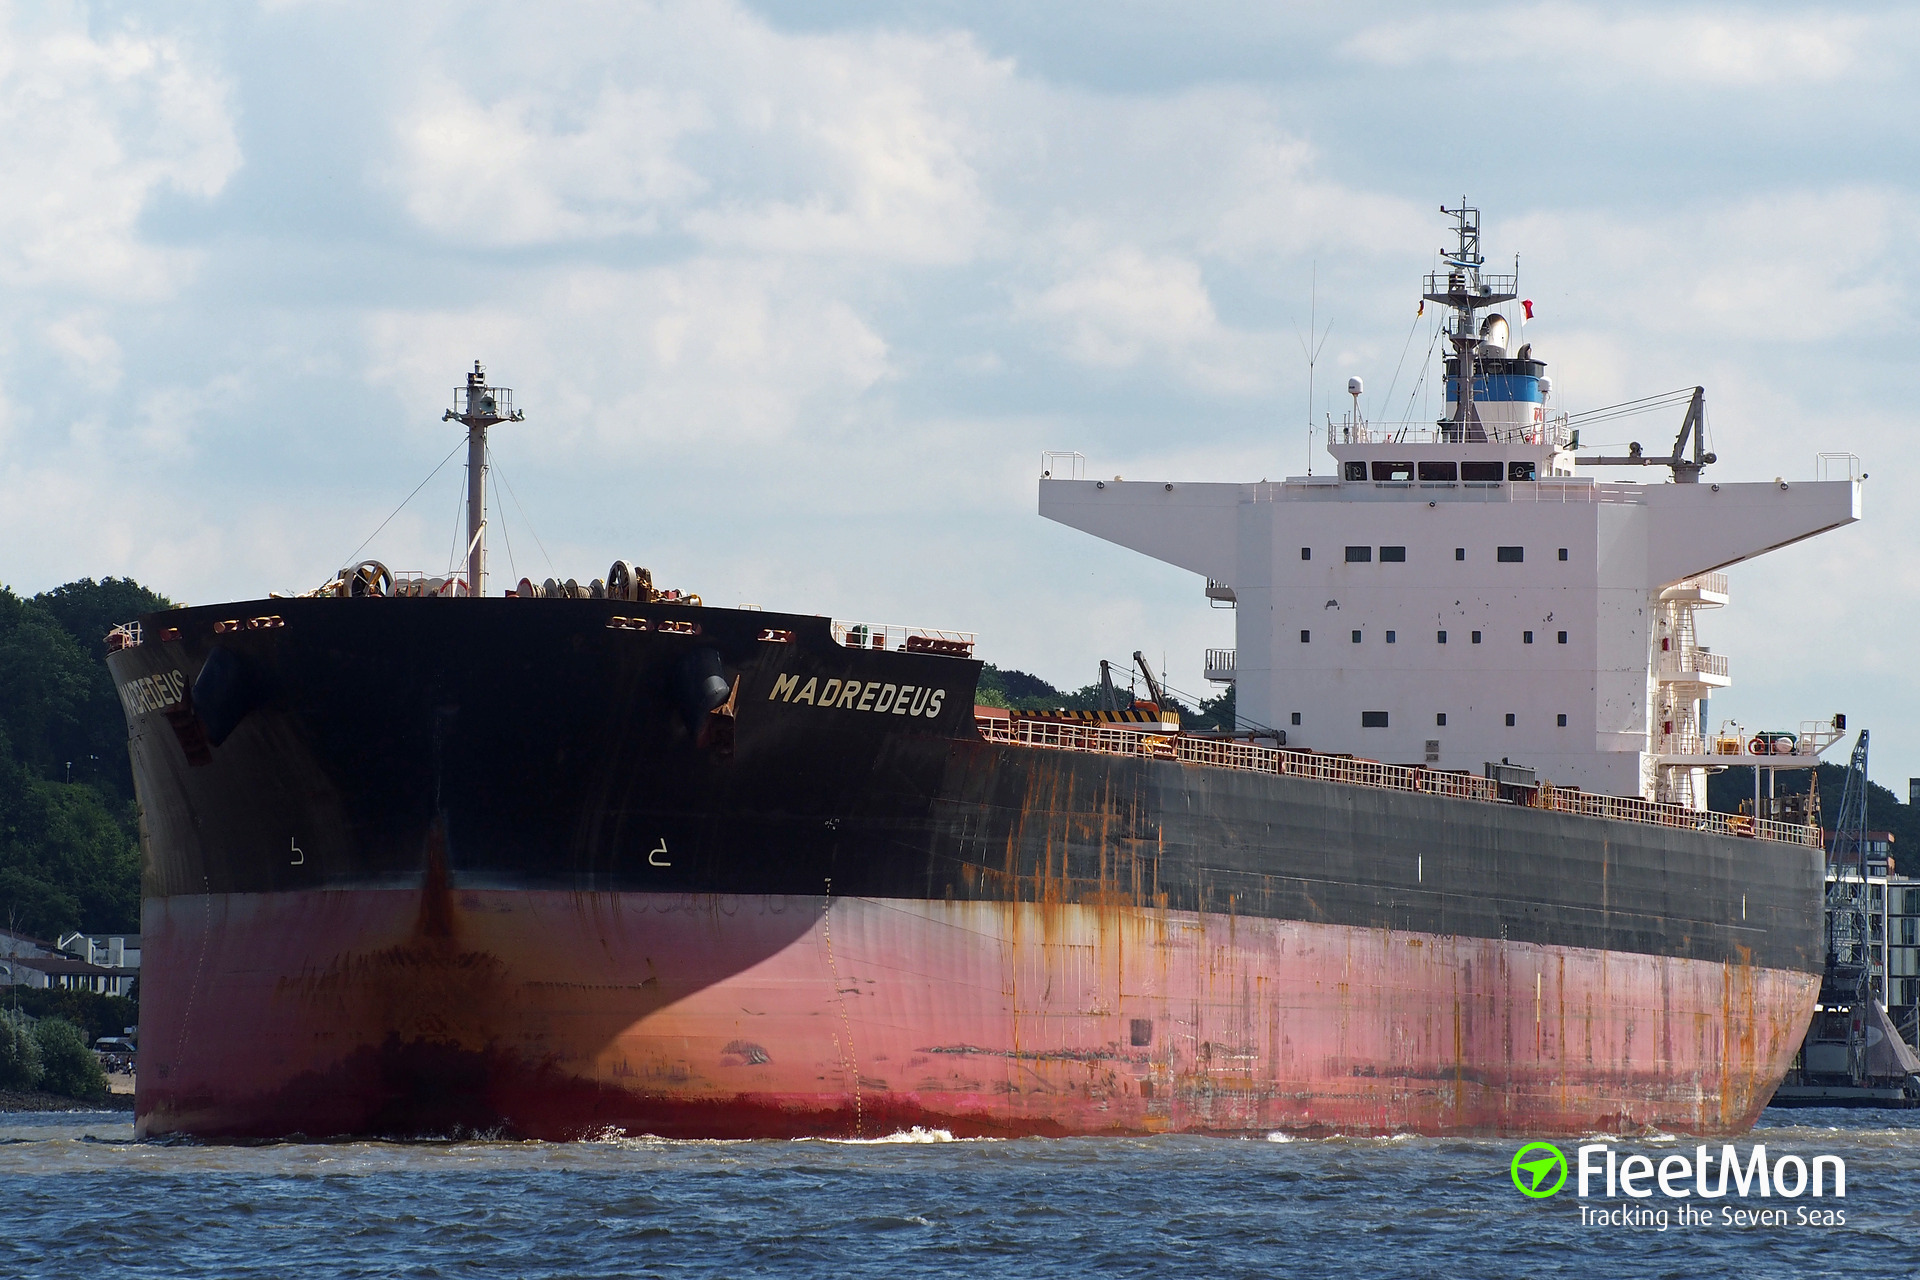 Fishing boat owners accuse bulker MADREDEUS in hit and run